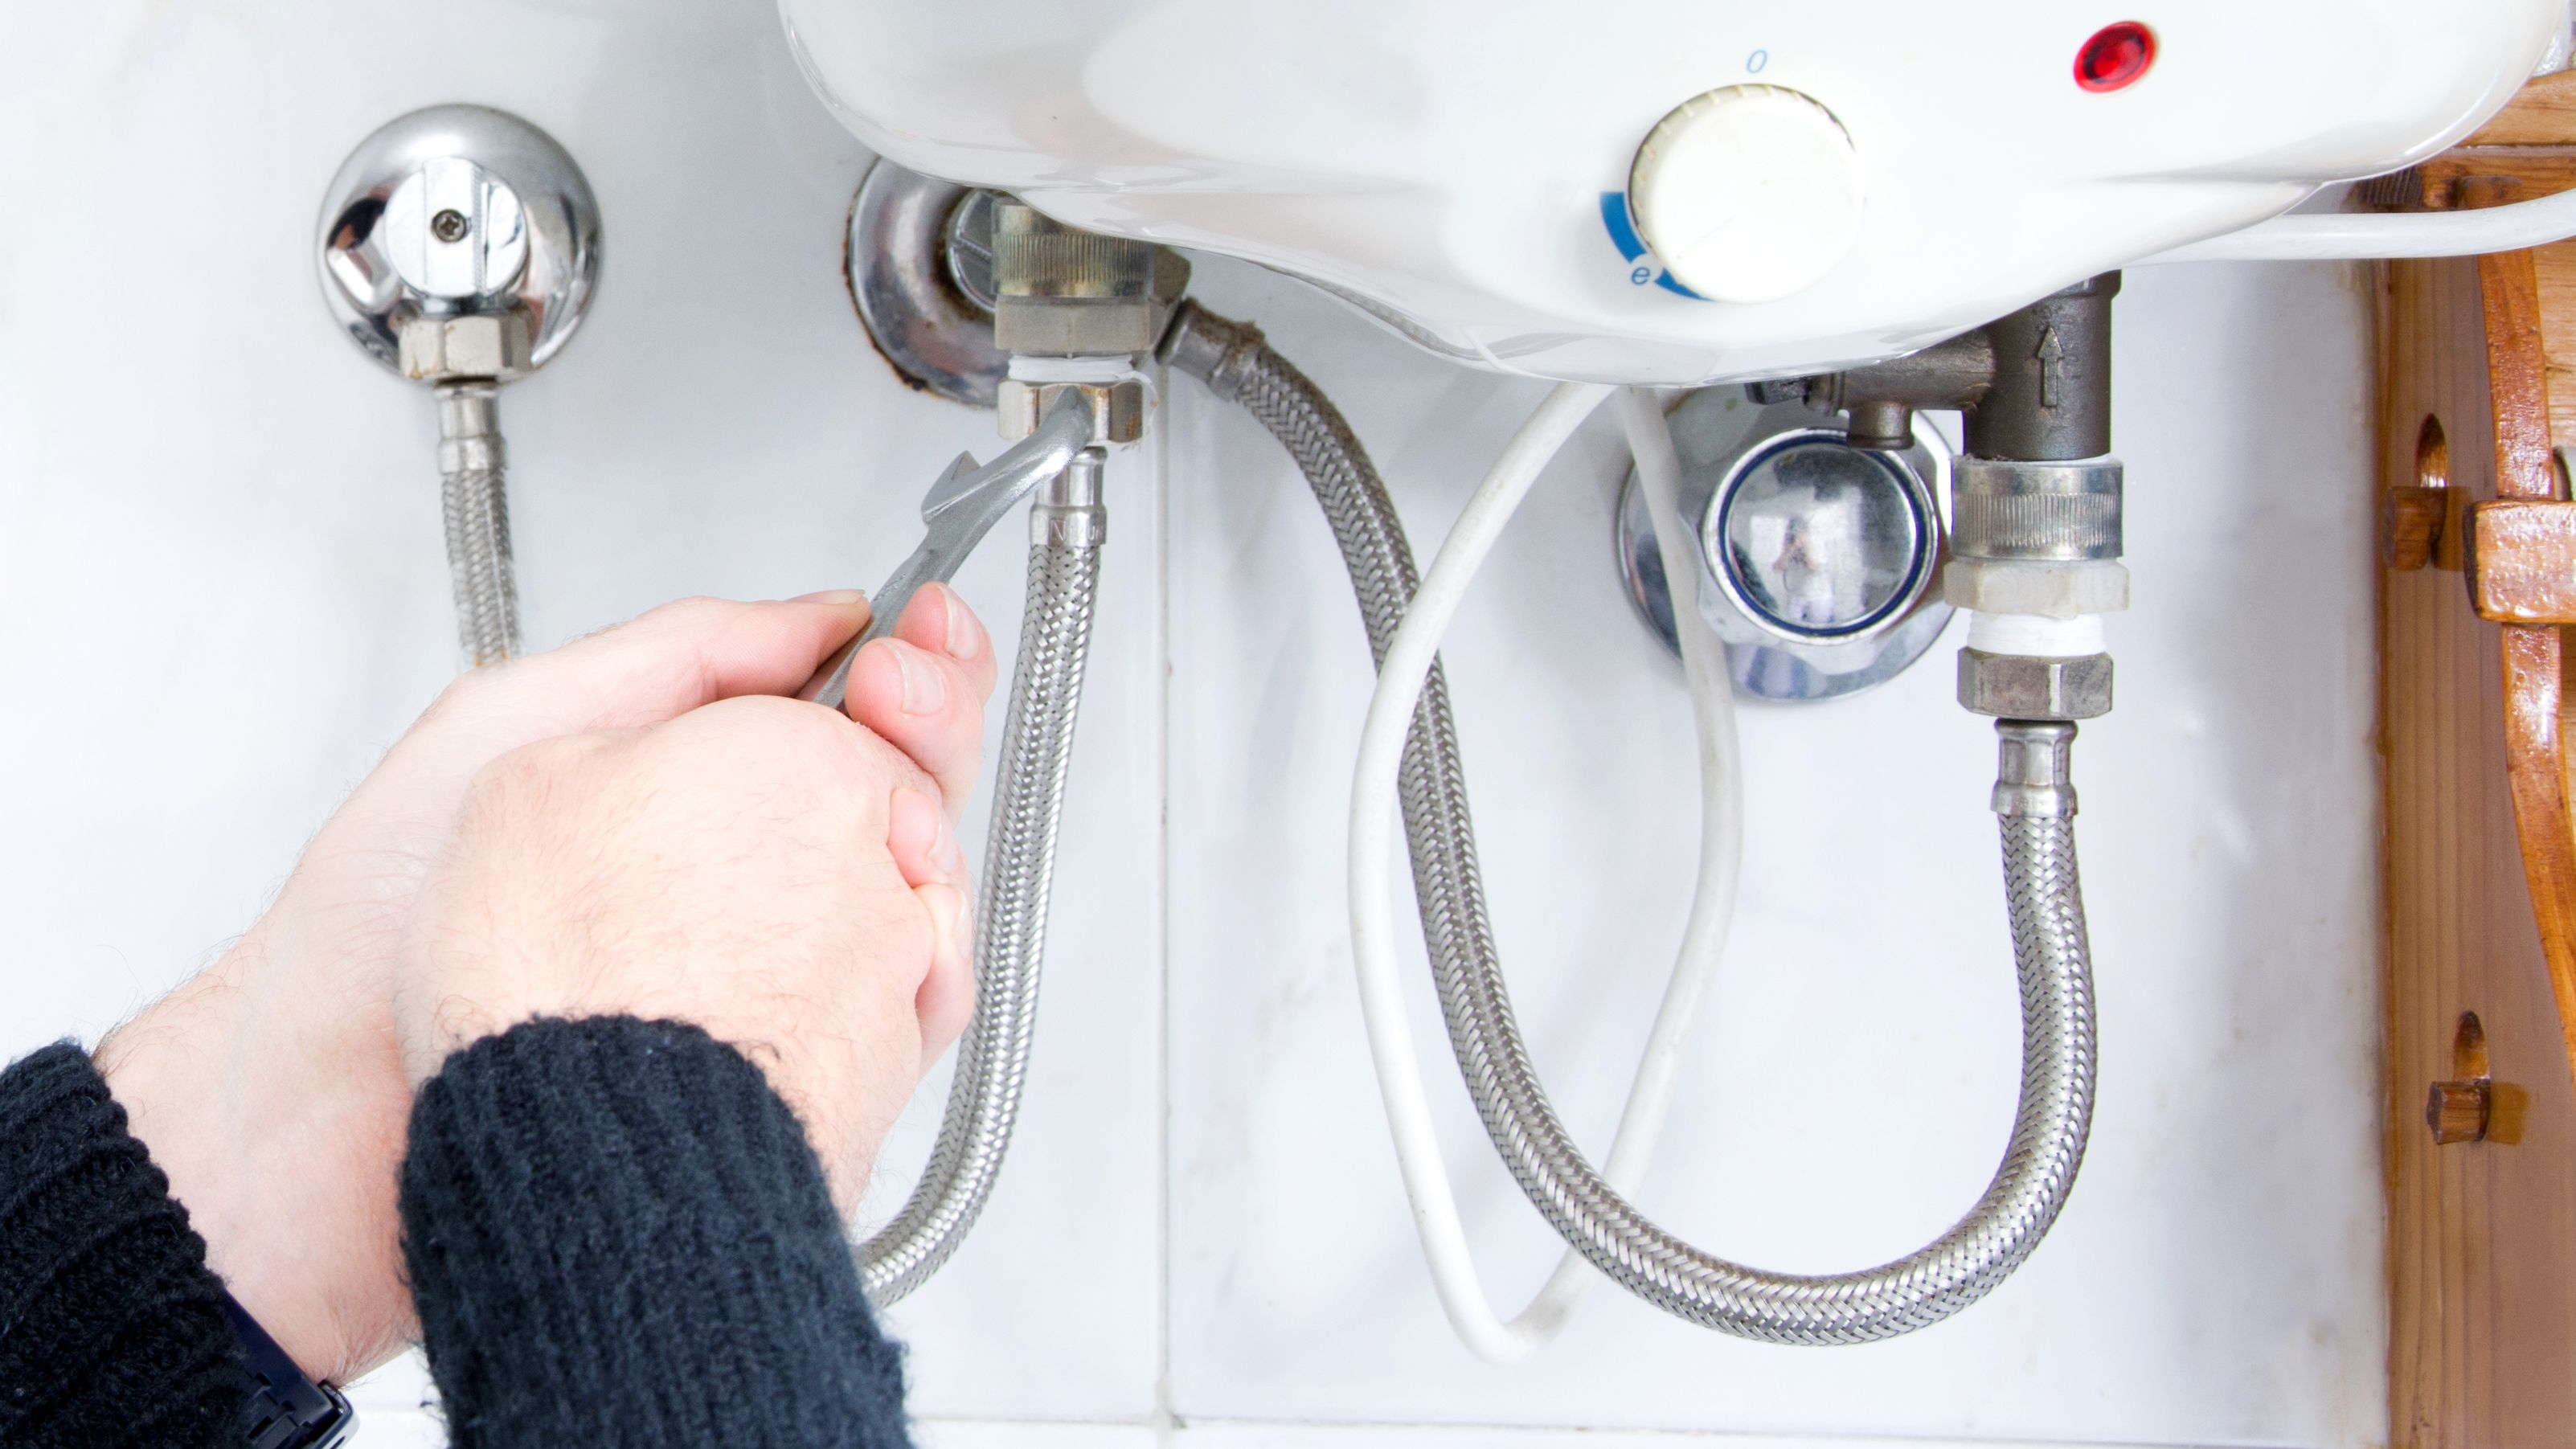 What is a Connection Kit for an Electric Water Heater?